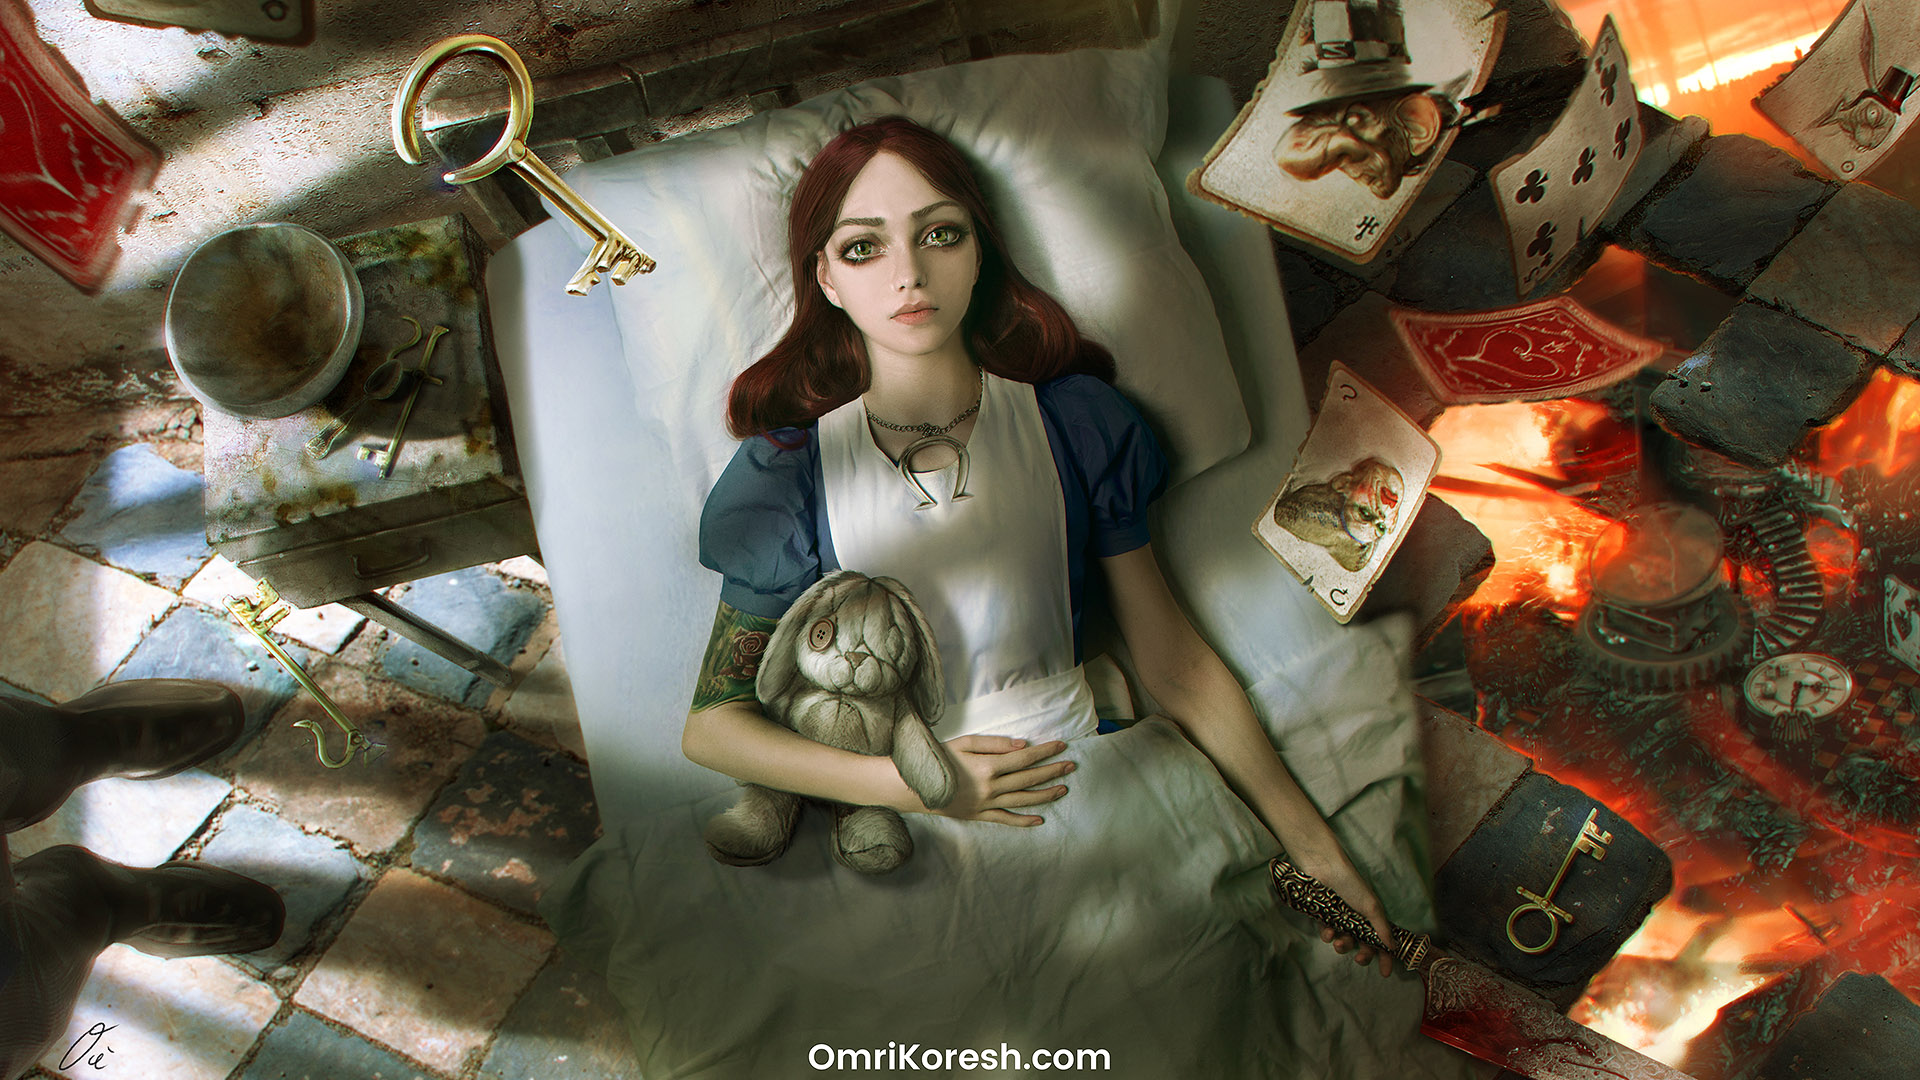 American McGee announces Alice: Asylum proposal